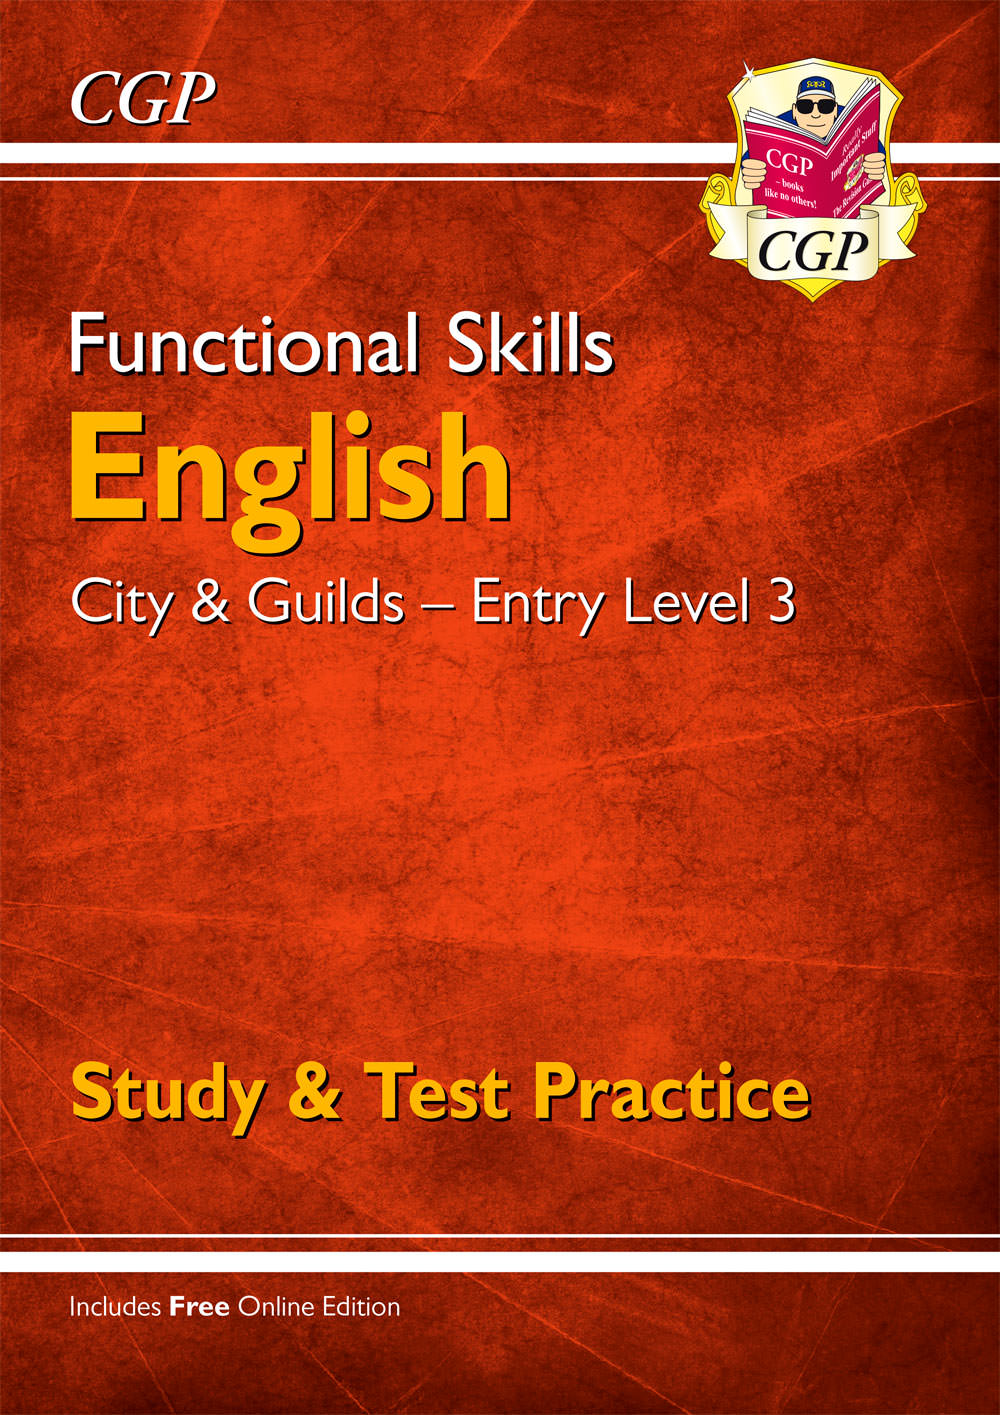 E3CGSRA1 - Functional Skills English: City & Guilds Entry Level 3 - Study & Test Practice for 2021 &